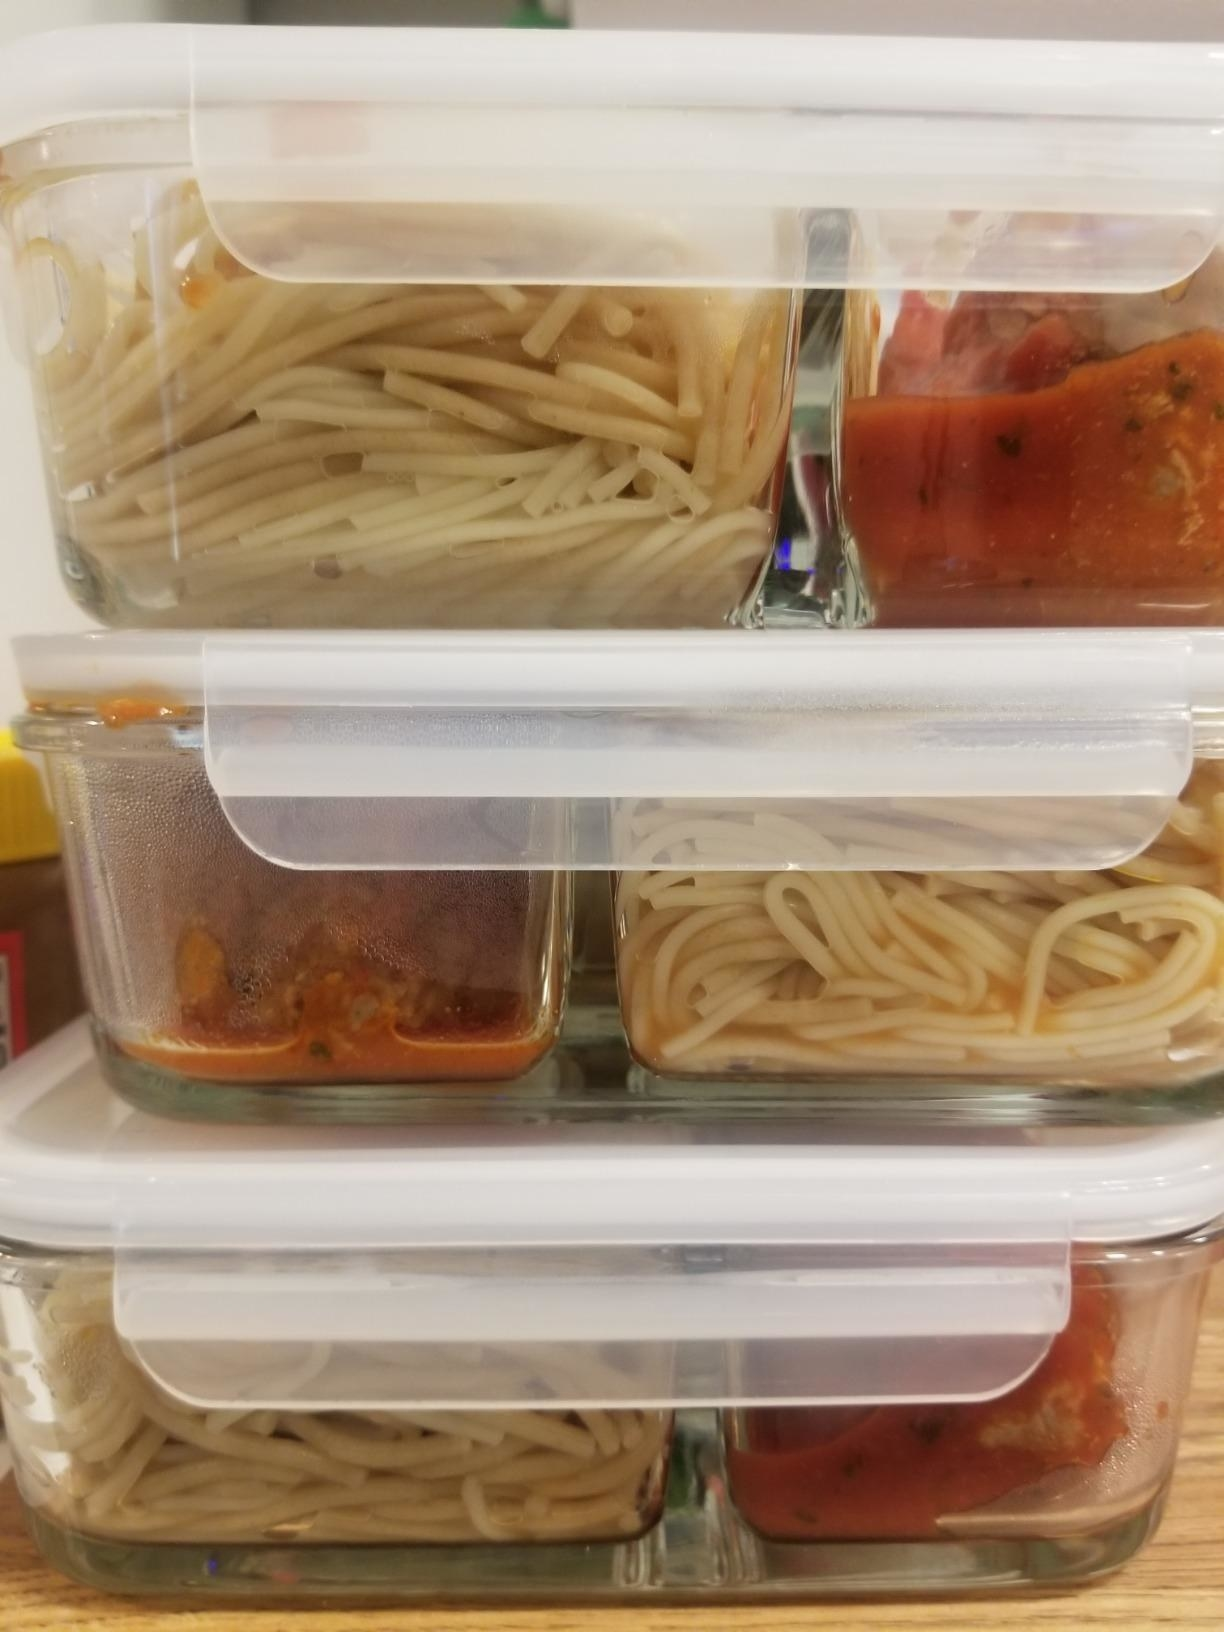 reviewer photo showing meal prep containers stacked in their fridge with pasta in them